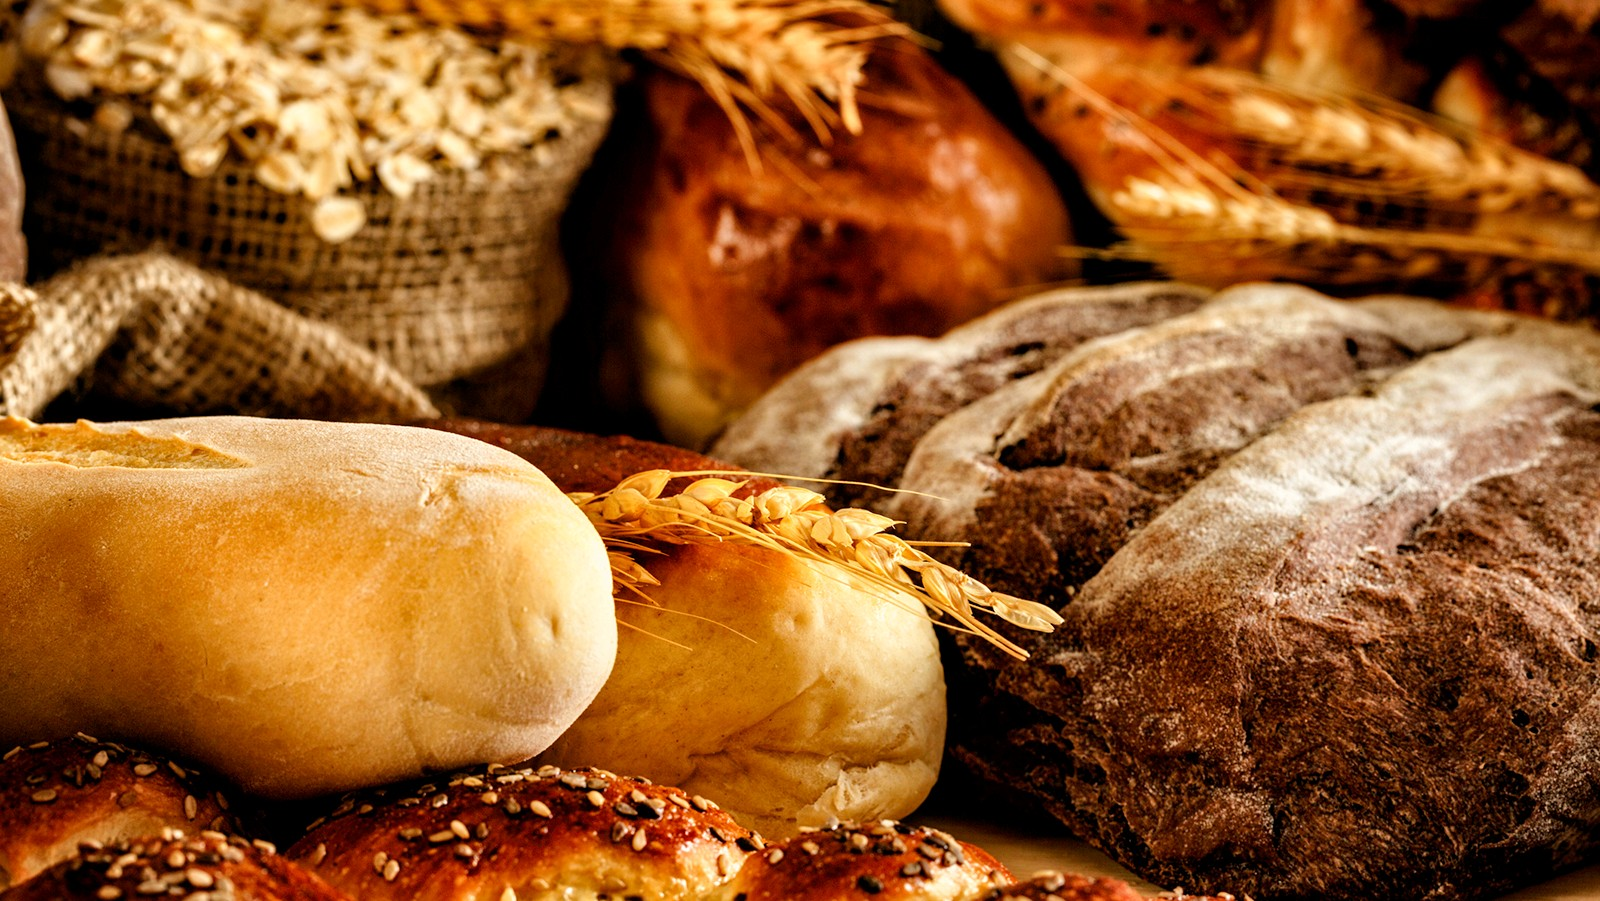 Choose wholegrain over white bread for its nutritional value